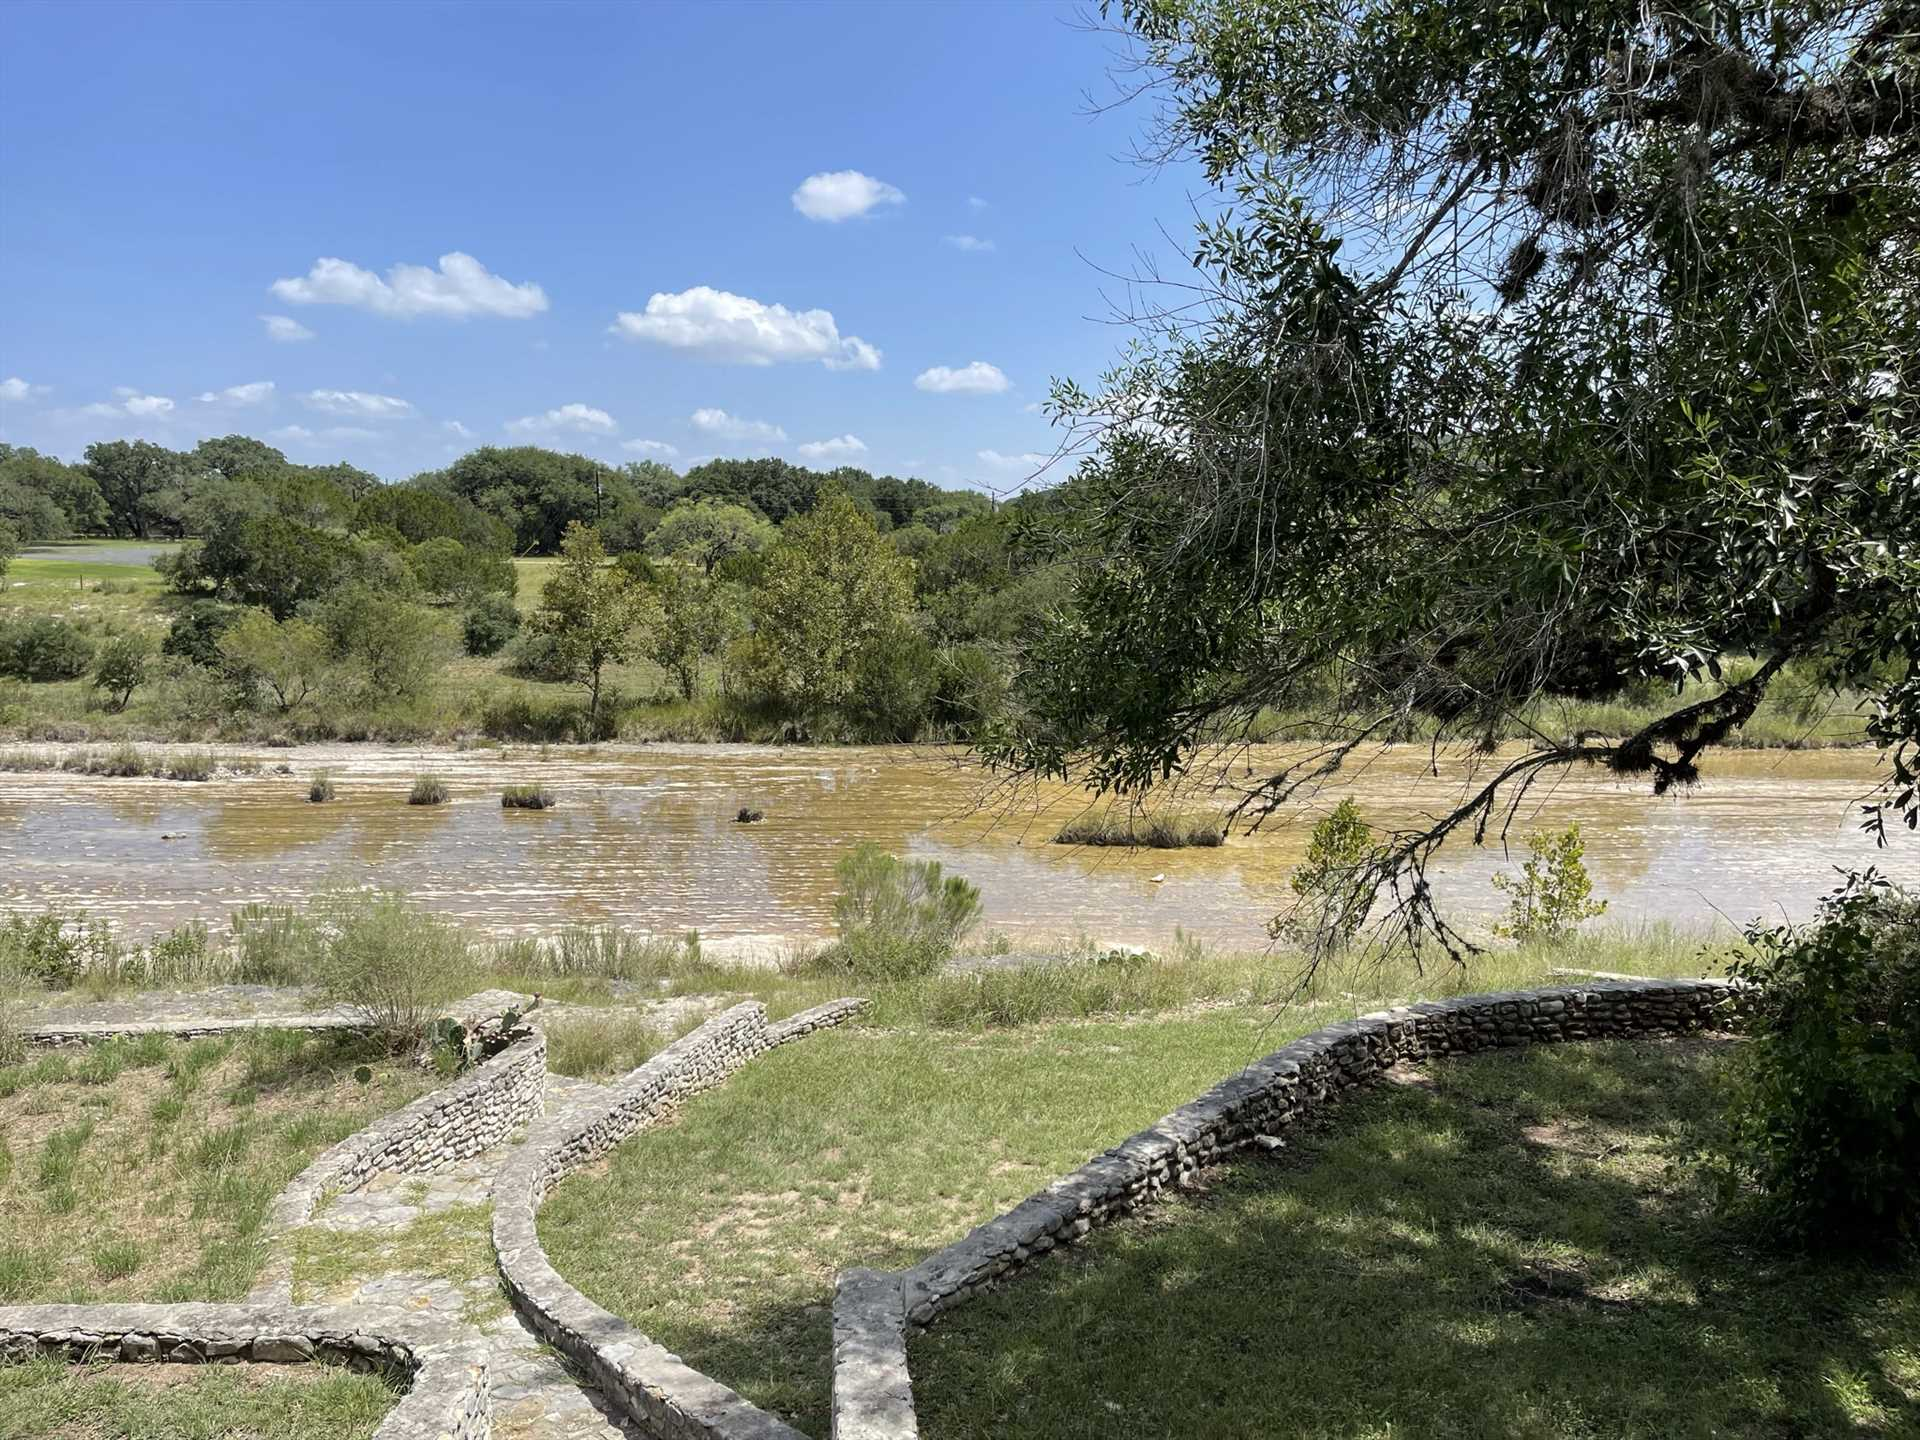 Your vacation home at the Lodge is close to the fun of the Frio River and shops in Concan, and Garner State Park is only 15 minutes away!